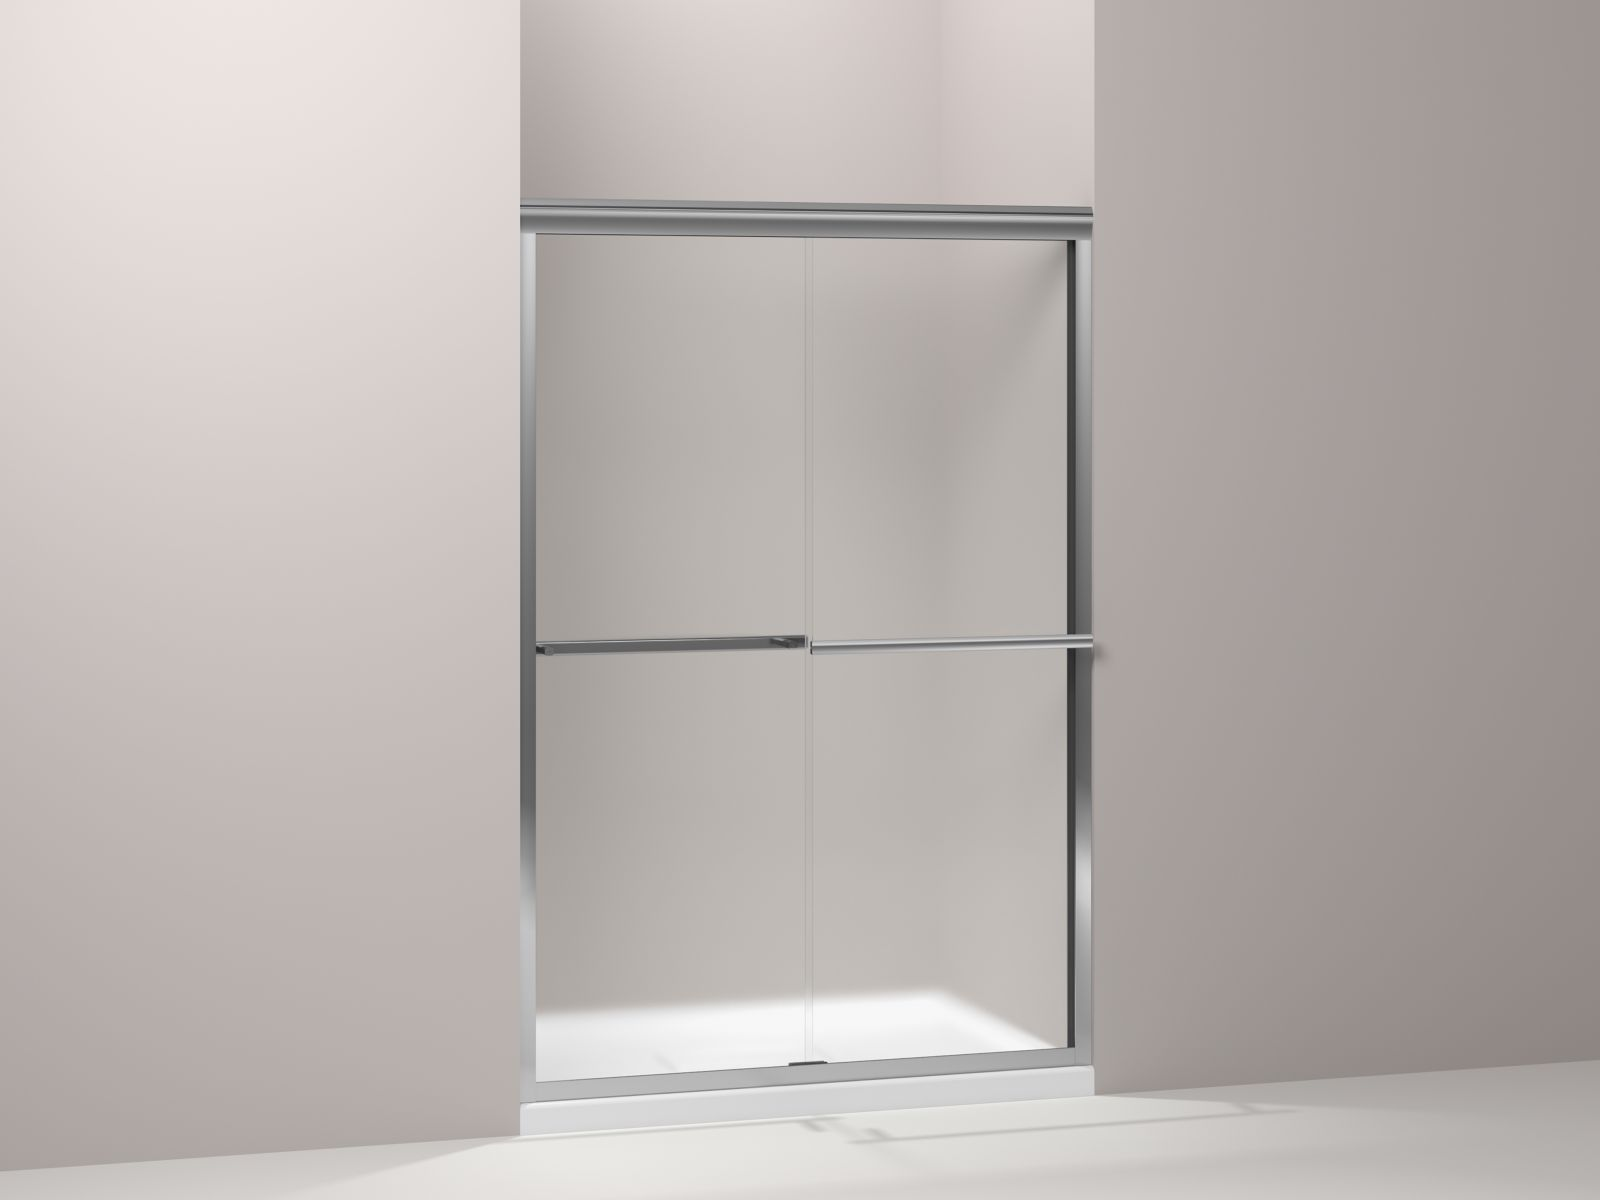 "Kohler Gradient™ K-709063-D3-SHP sliding shower door, 70-1/16"" H x 47-5/8"" W, with 1/4"" thick Frosted glass Bright Polished Silver"